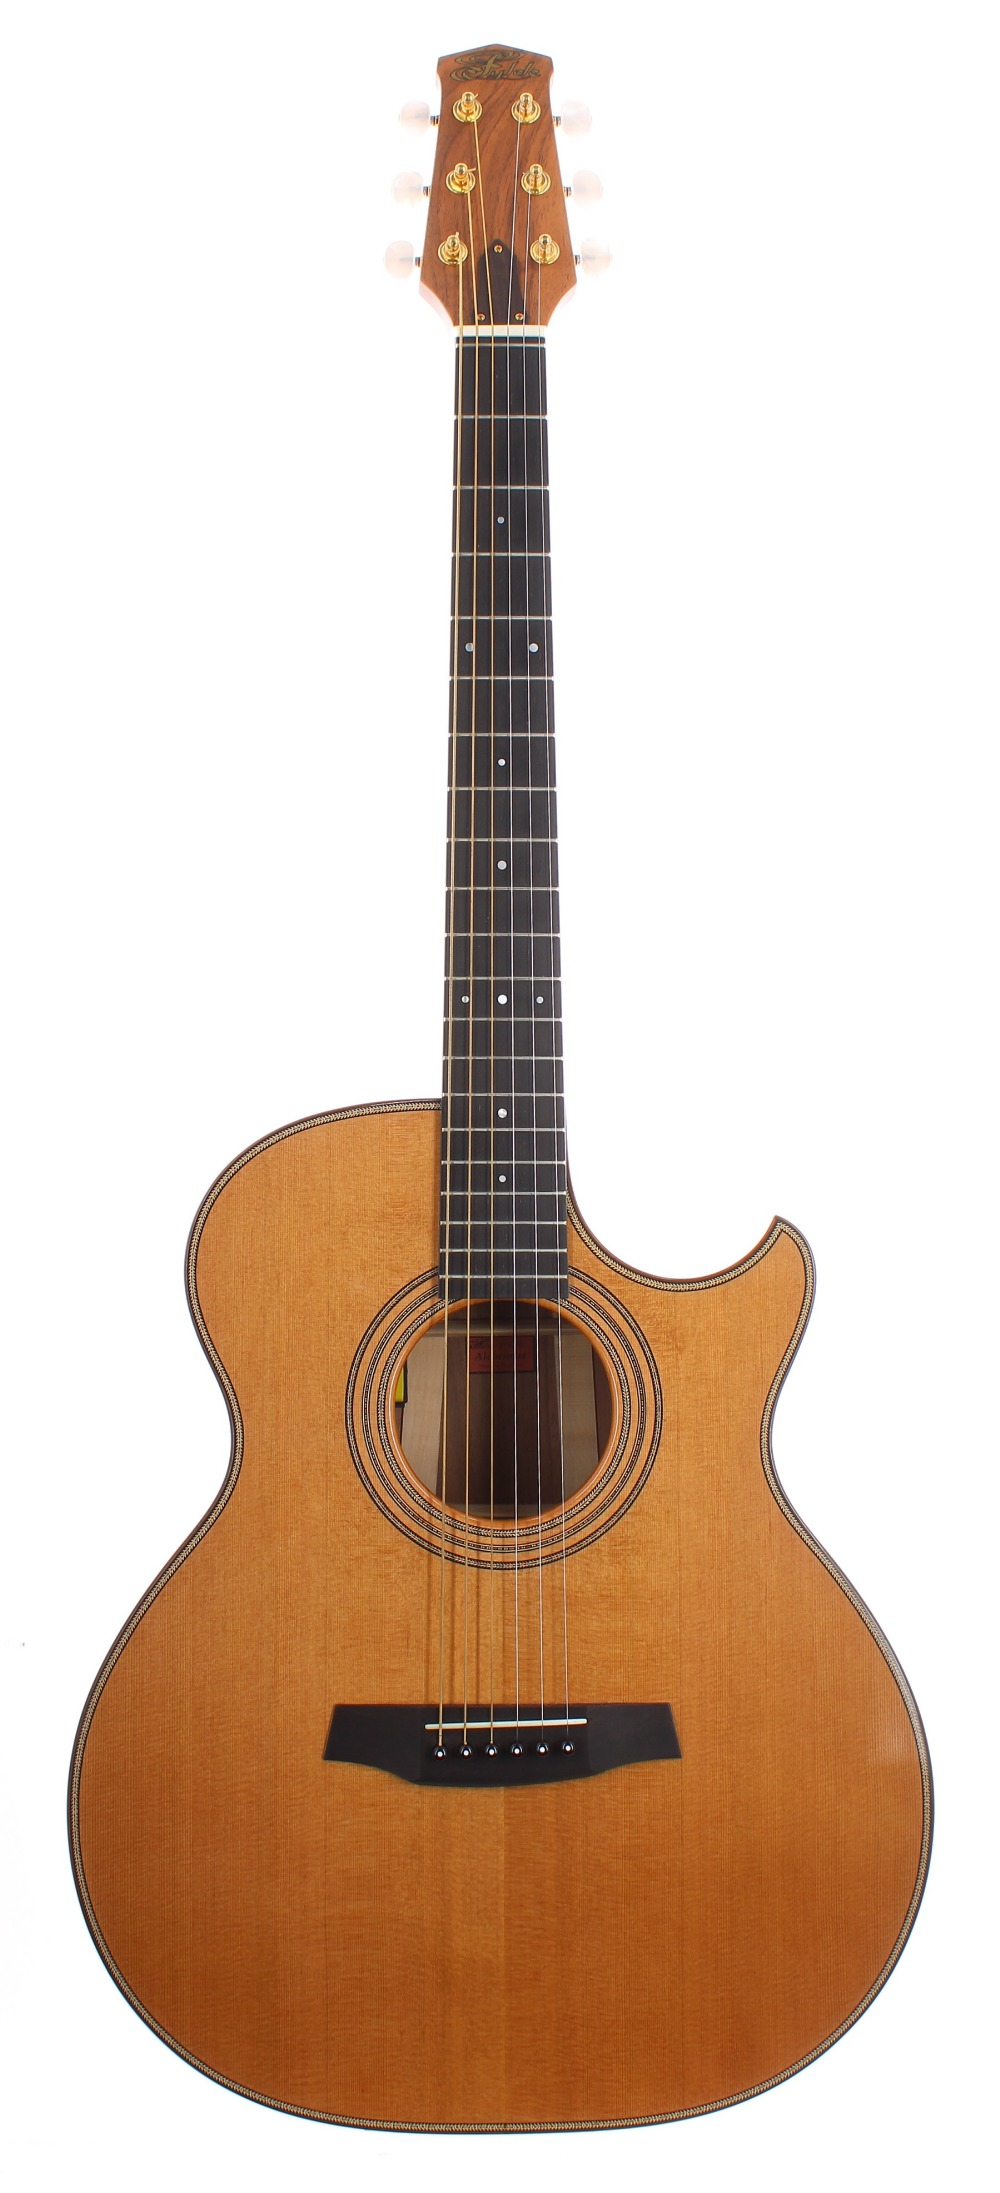 Fylde Alchemist electro-acoustic guitar, made in England, ser. no. 6xx4; Back and sides: English